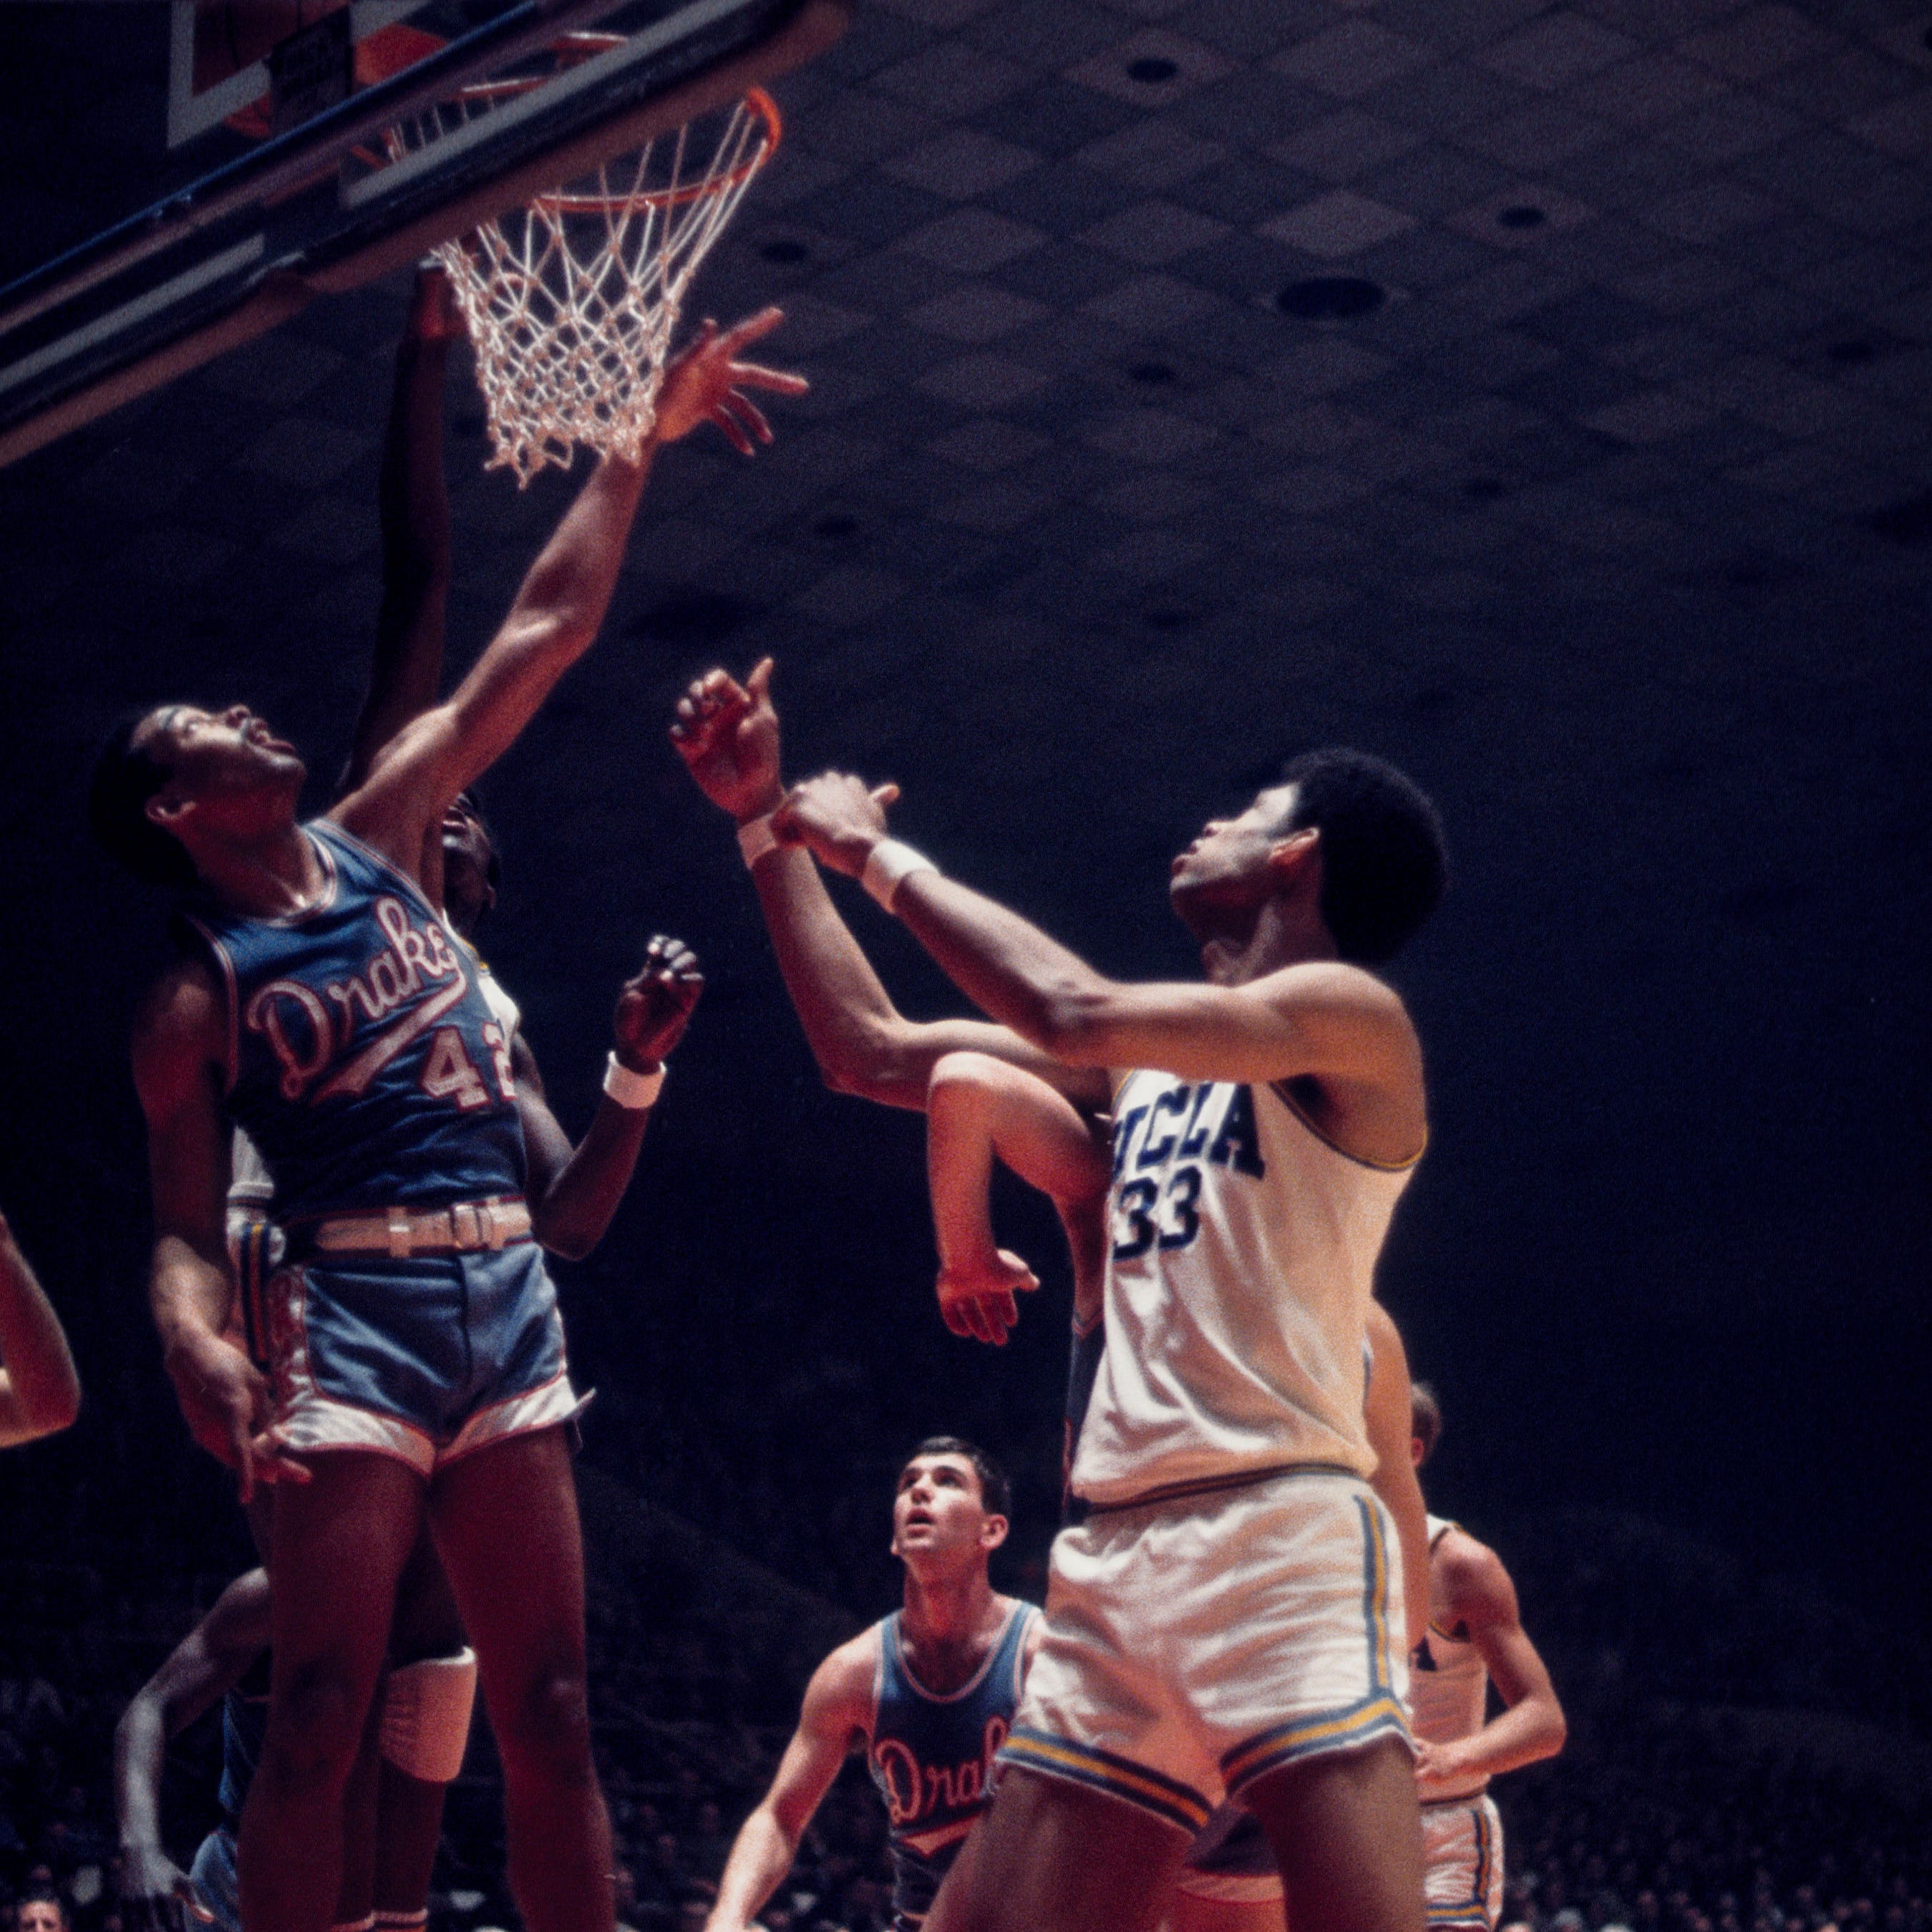 The David vs. Goliath story of the 1969 Drake Bulldogs and their run to NCAA's Final Four